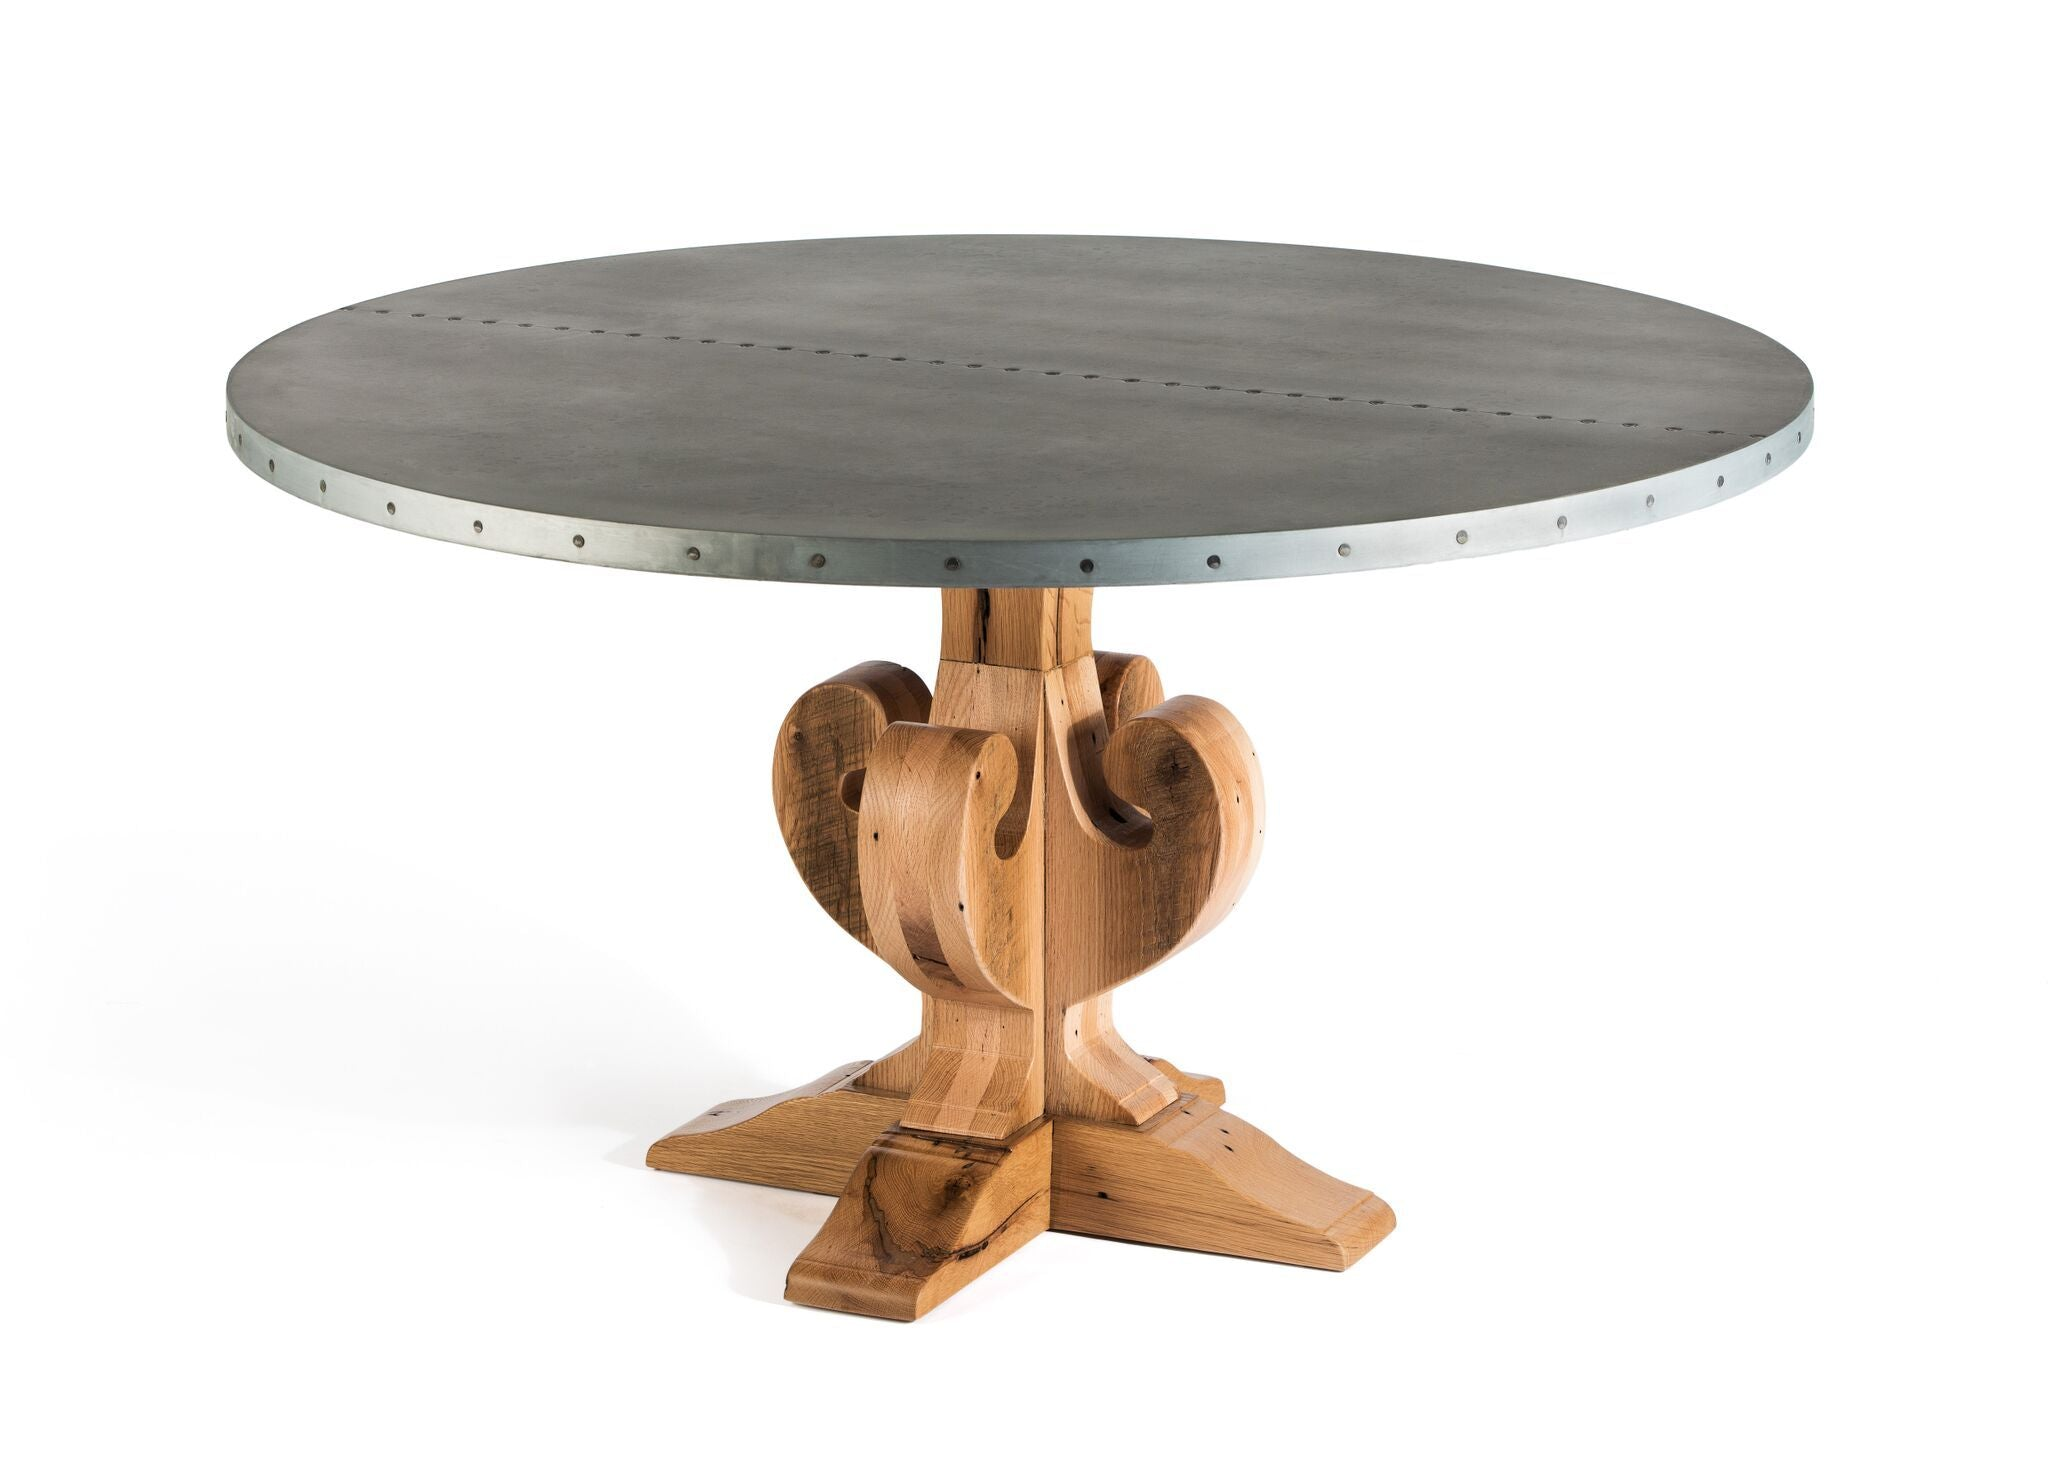 "Zinc Round Tables | French Trestle | CLASSIC | Natural Reclaimed Oak | CUSTOM SIZE L 35 W 30 H 30 | 1.5"" Standard kingston-krafts-zinc-tables."